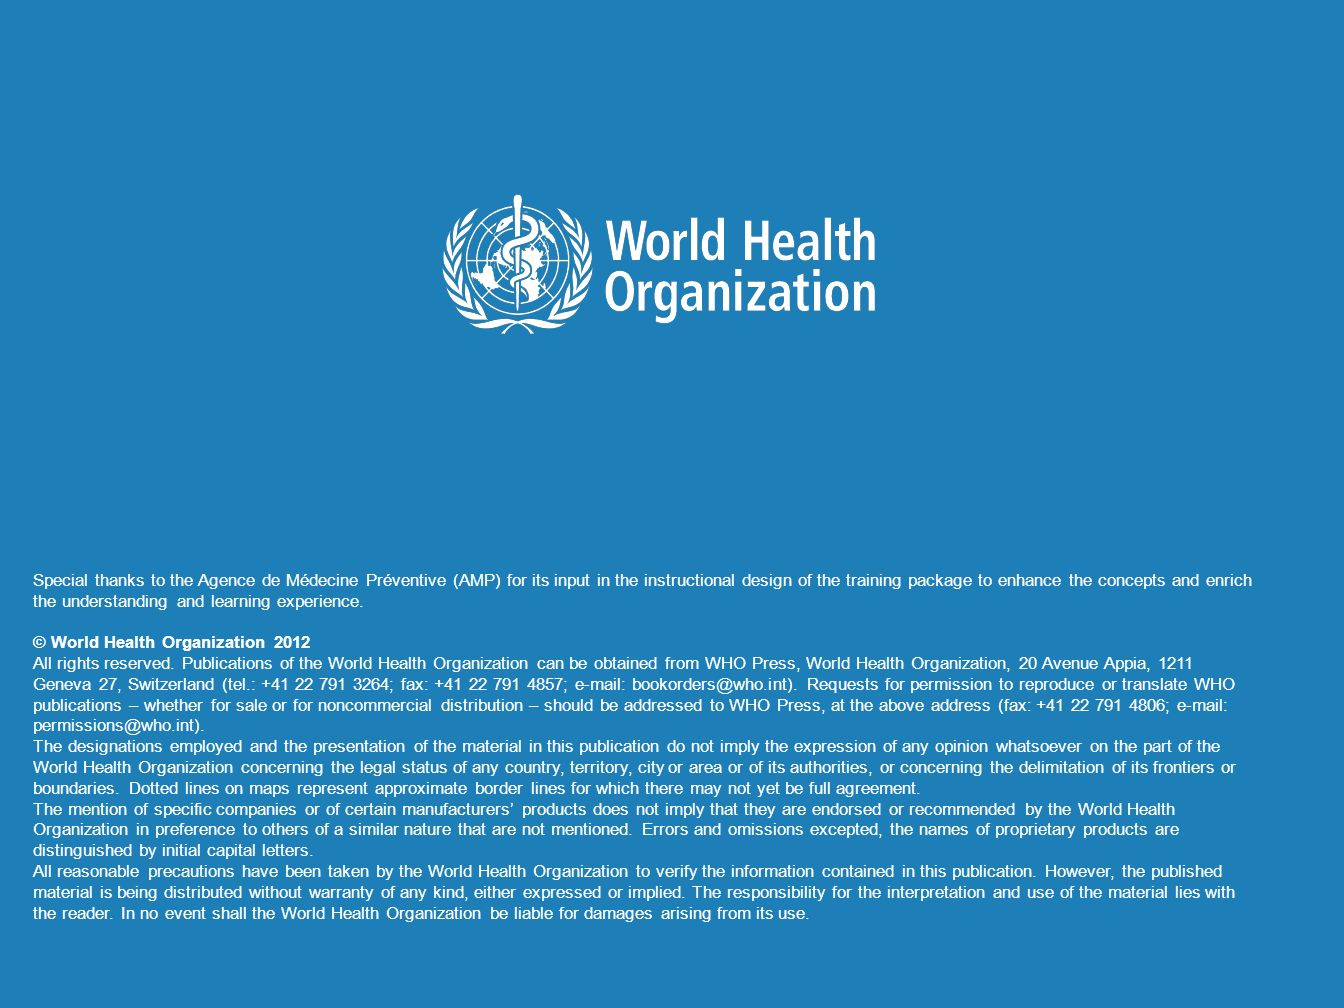 © World Health Organization 2012